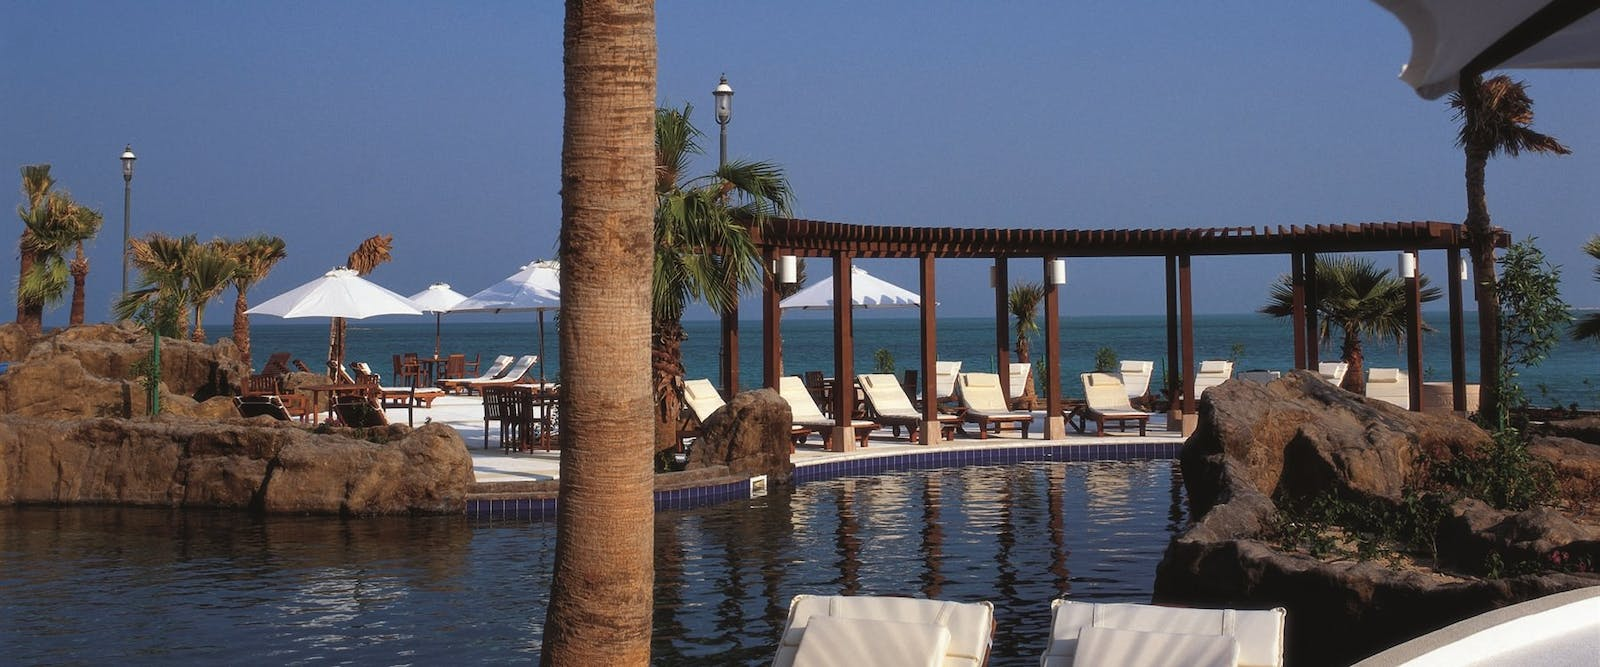 Outdoor Pool at The Ritz-Carlton Doha